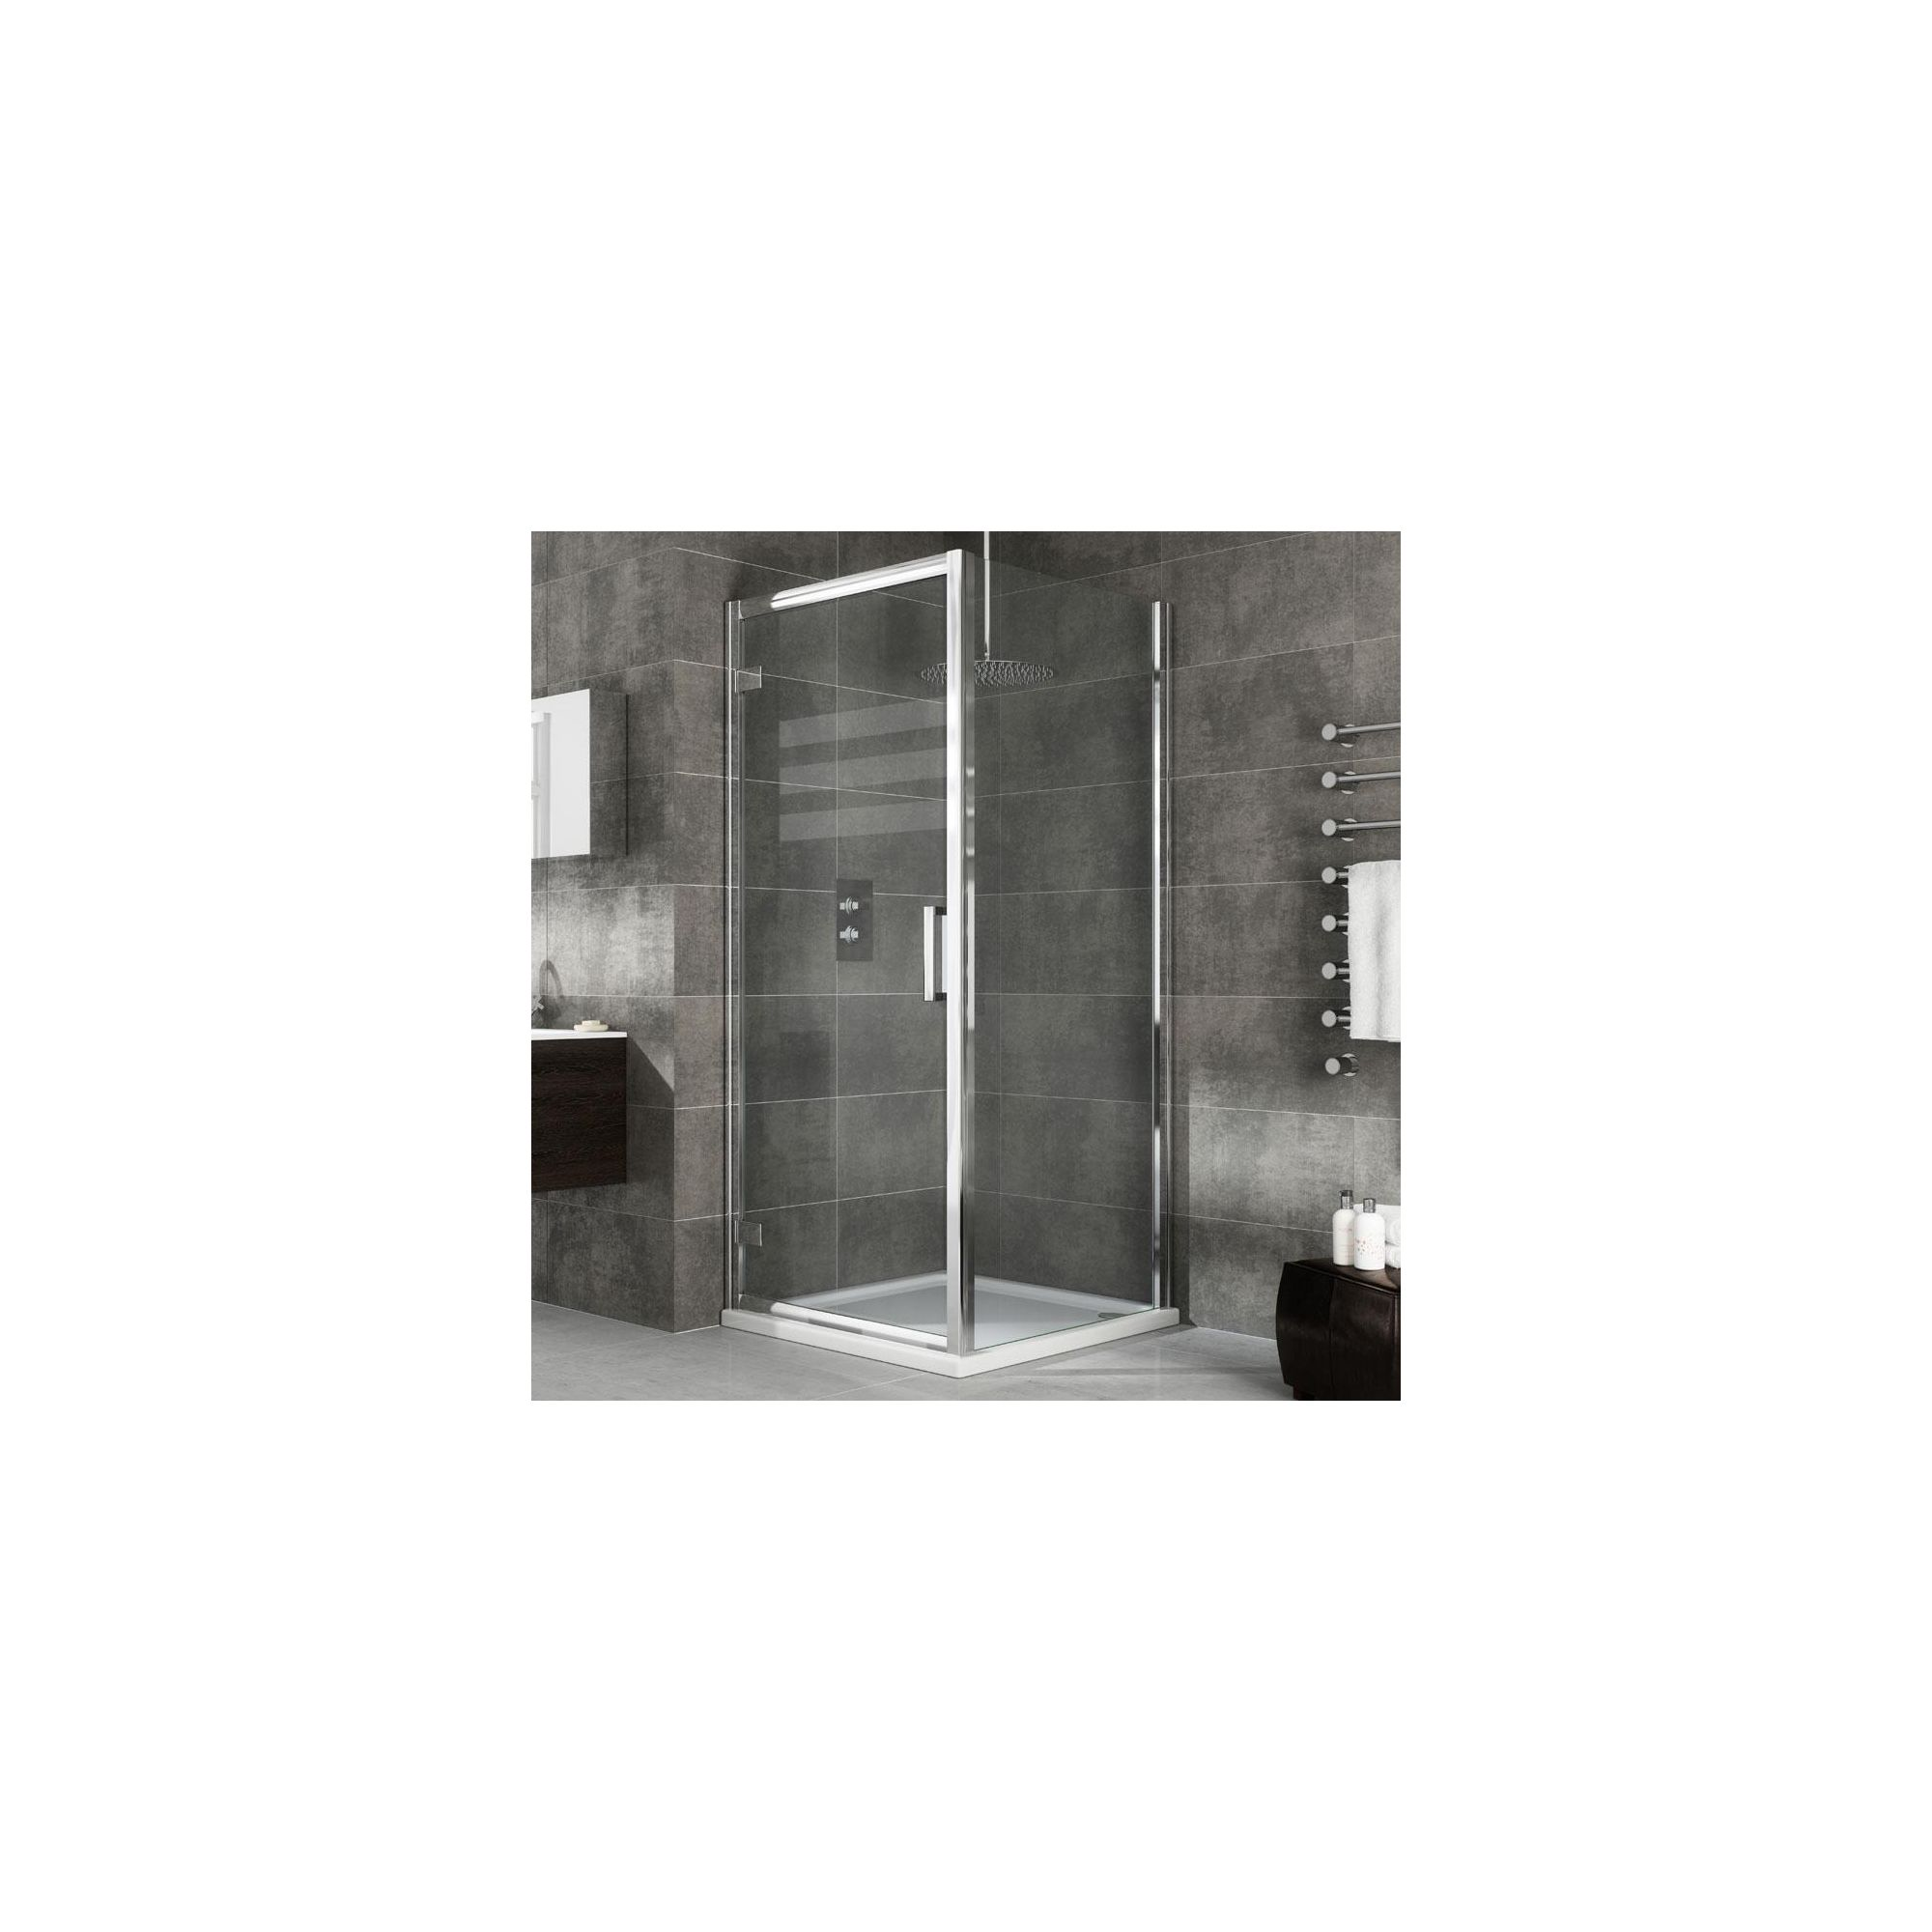 Elemis Eternity Hinged Shower Door, 700mm Wide, 8mm Glass at Tesco Direct